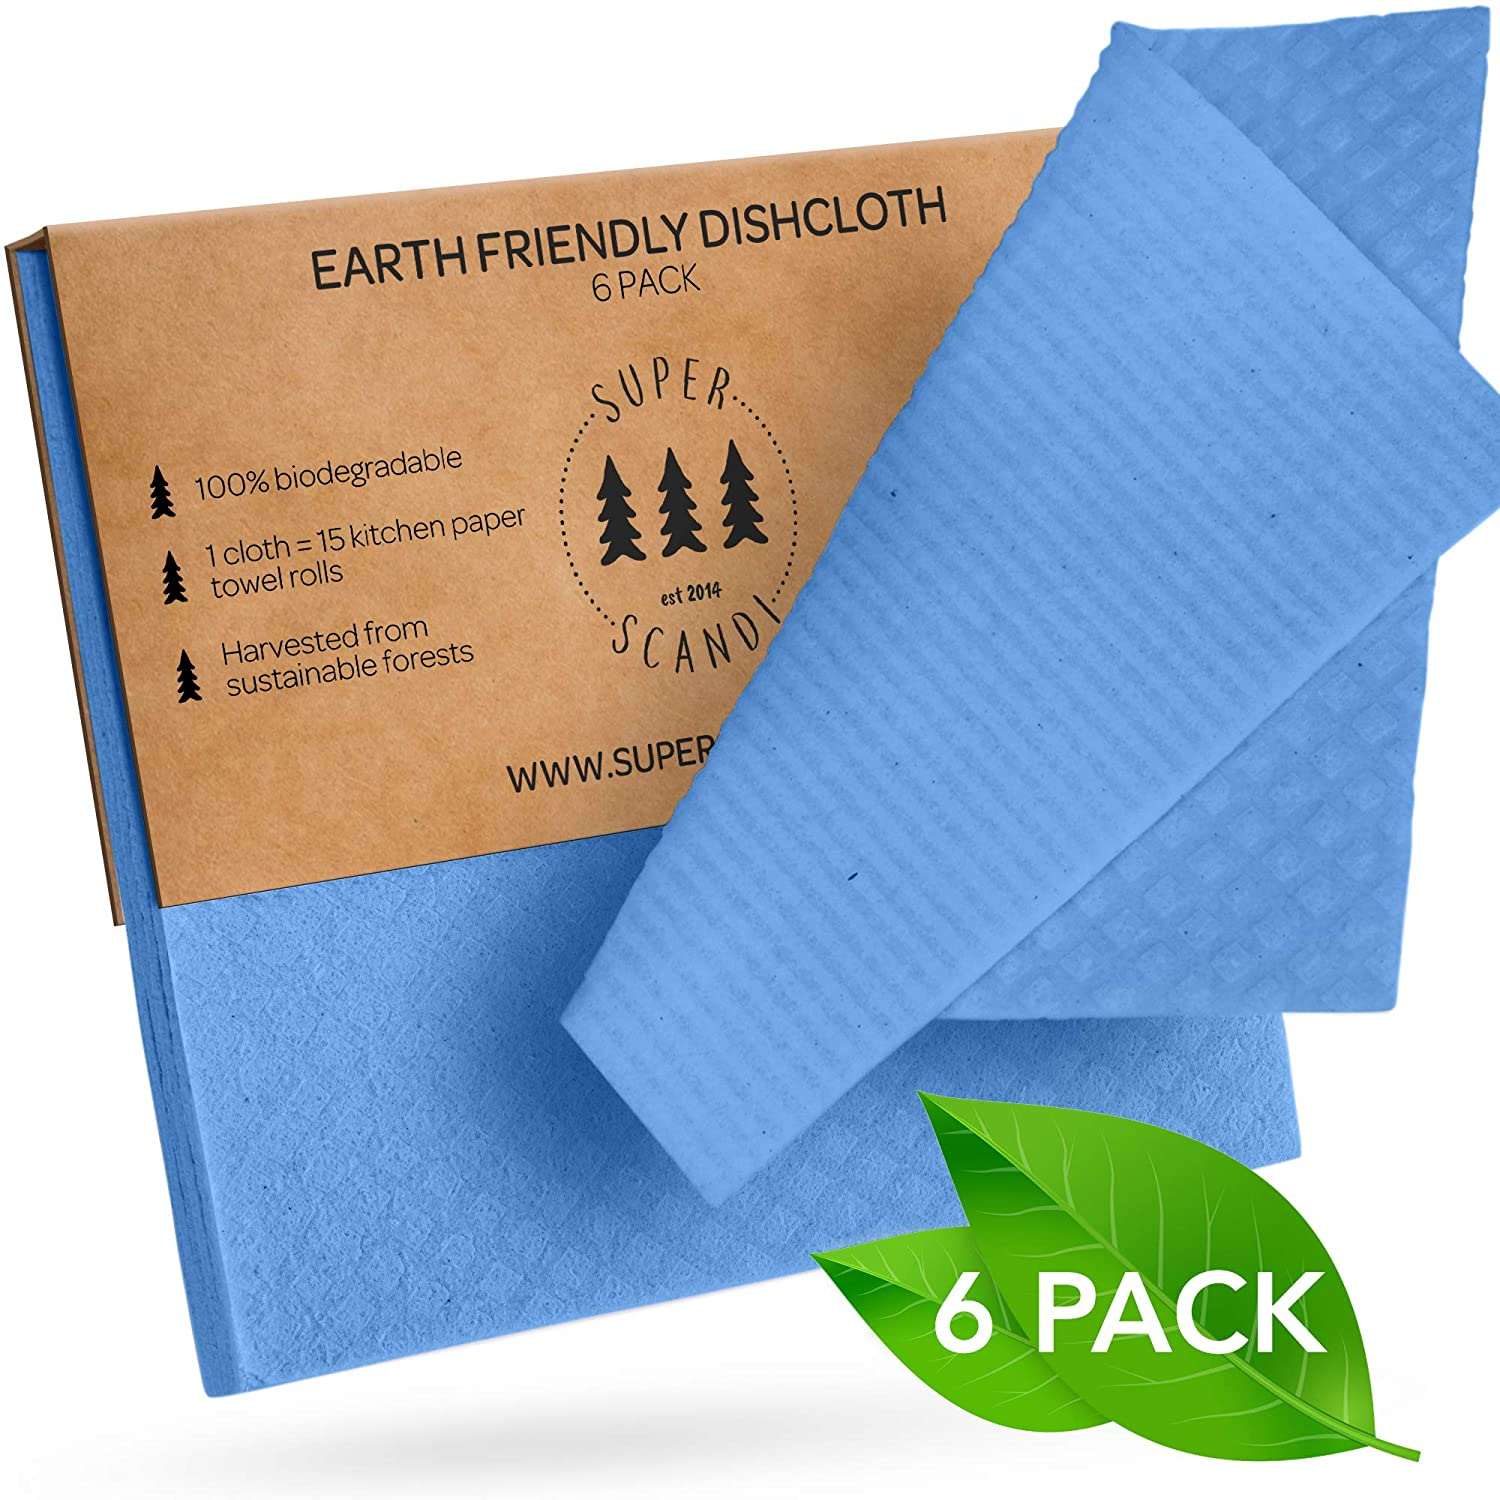 SUPERSCANDI Swedish Dishcloths Eco Friendly Reusable Sustainable Biodegradable Cellulose Sponge Cleaning Cloths for Kitchen Dish Rags Washing Wipes Paper Towel Replacement Washcloths (6 Pack Blue)